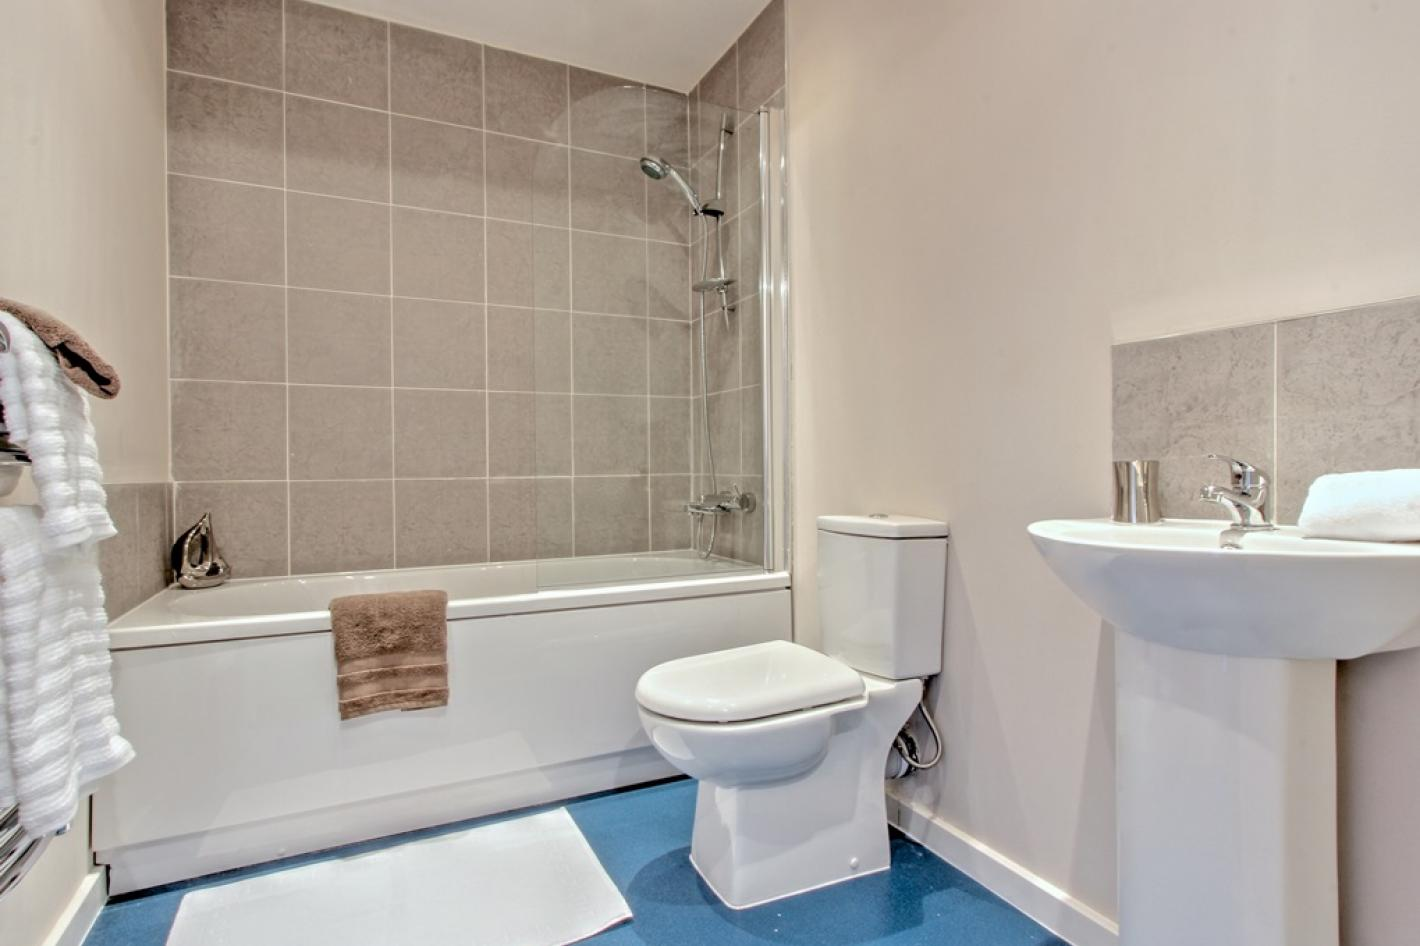 bathroom with blue flooring and beige tiles